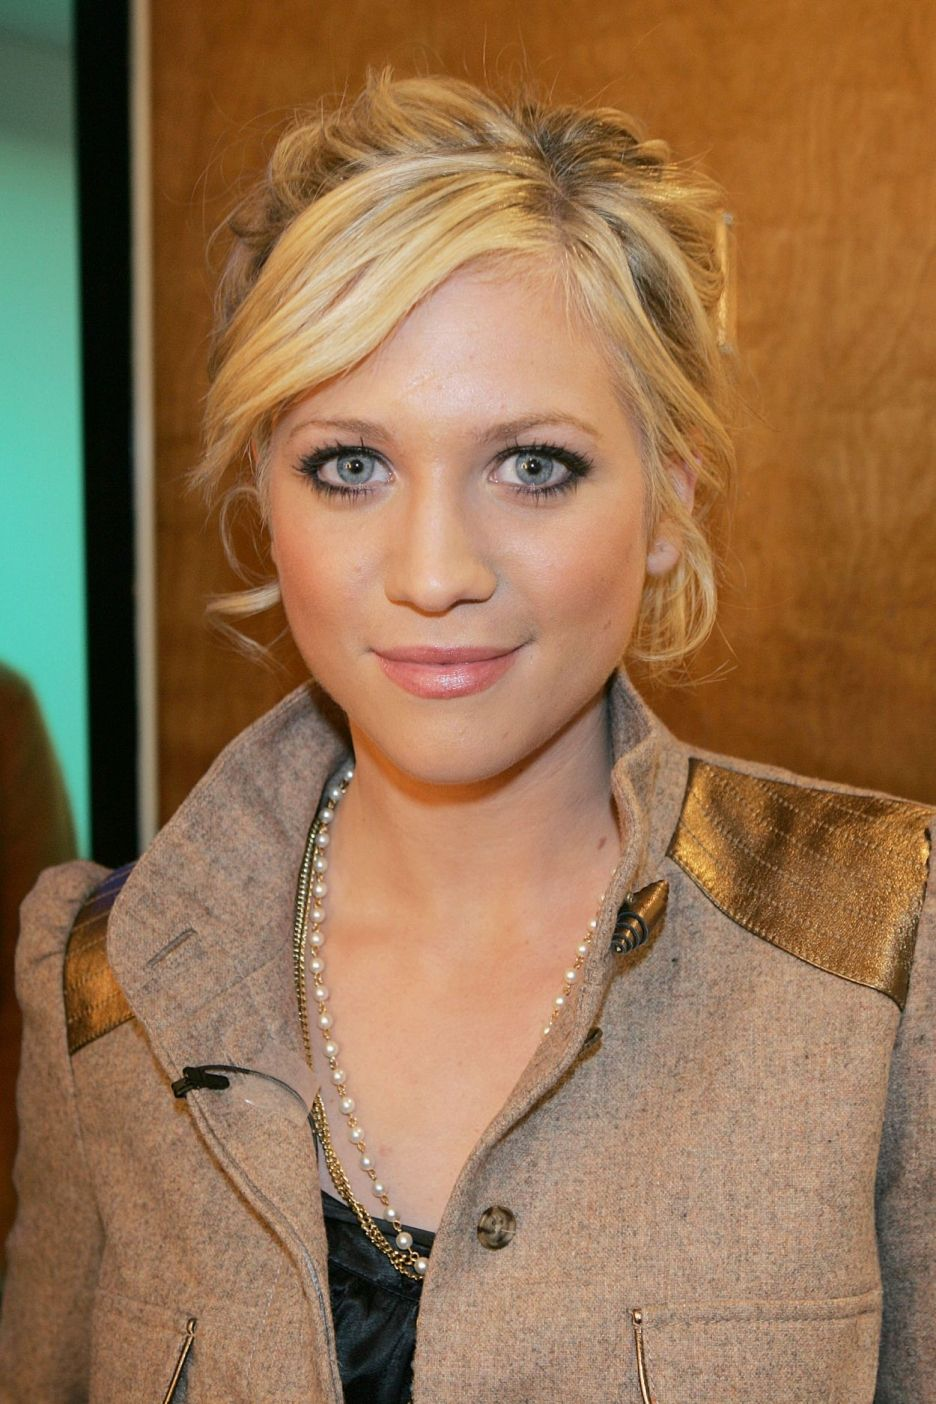 Brittany Snow - her character in Pitch Perfect (while ... Brittany Snow